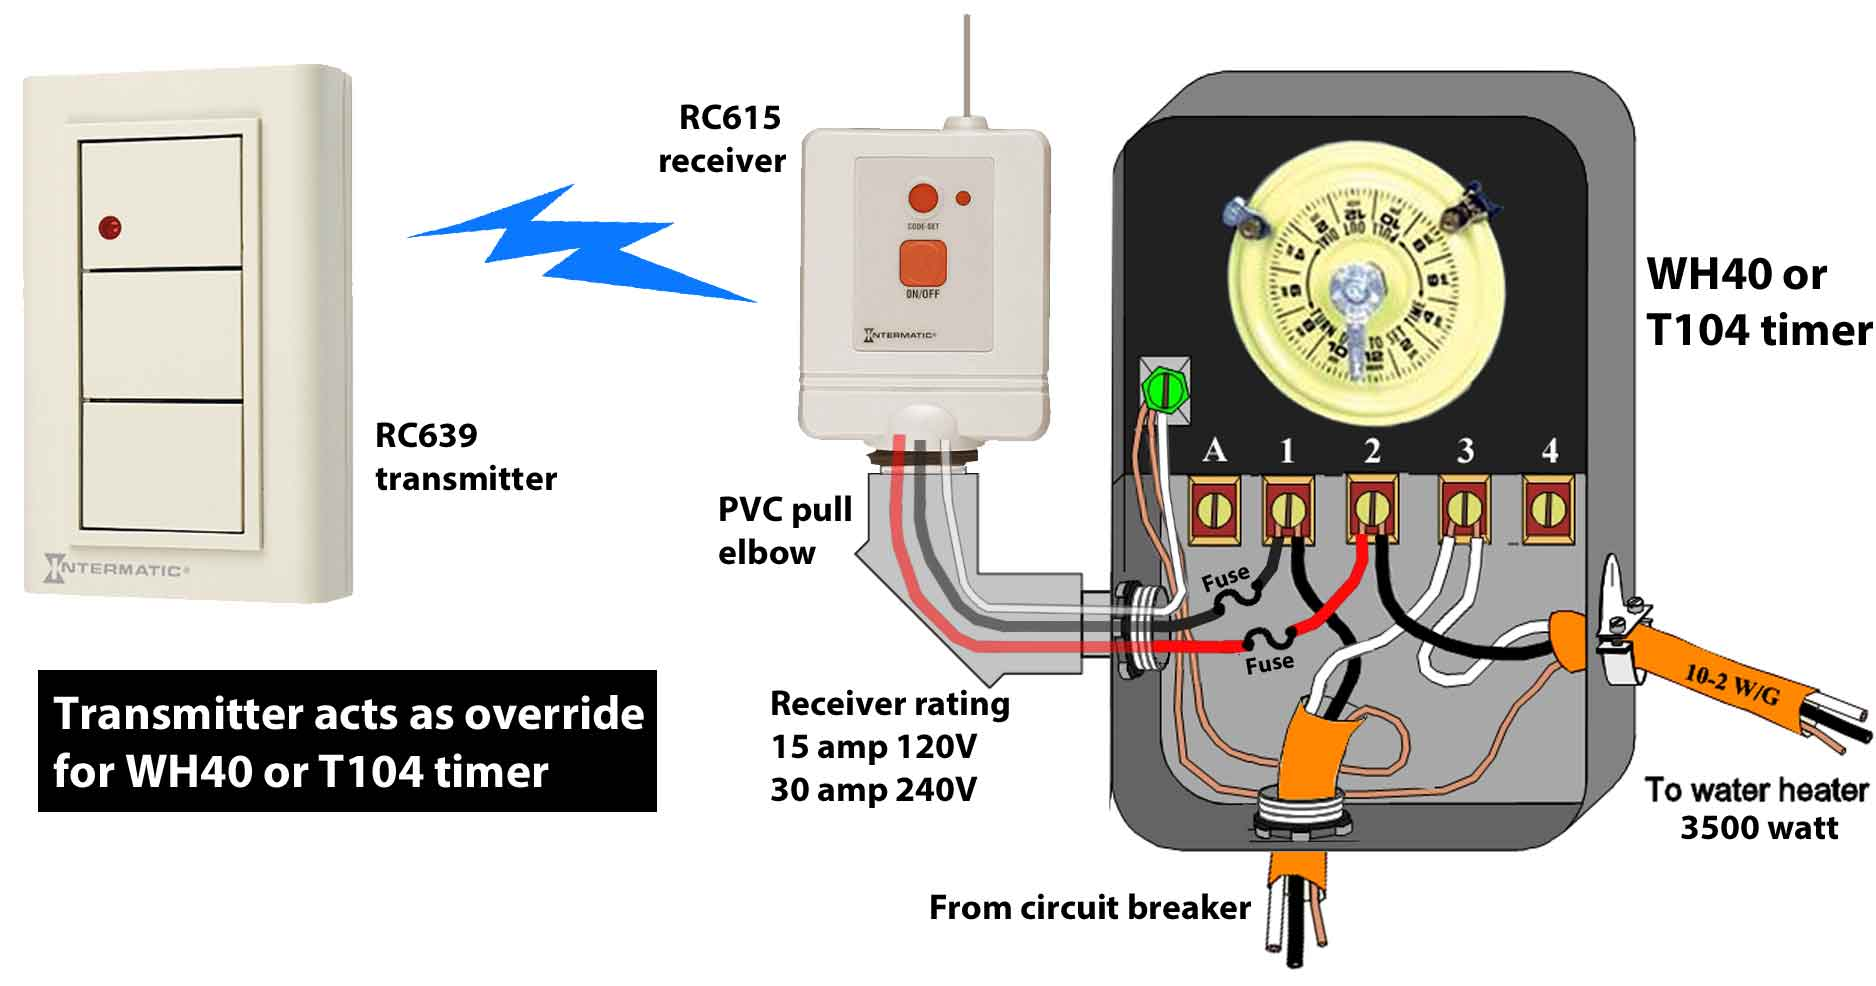 Intermatic remote RC control how to wire wh40 water heater timer timer switch wiring diagram at reclaimingppi.co